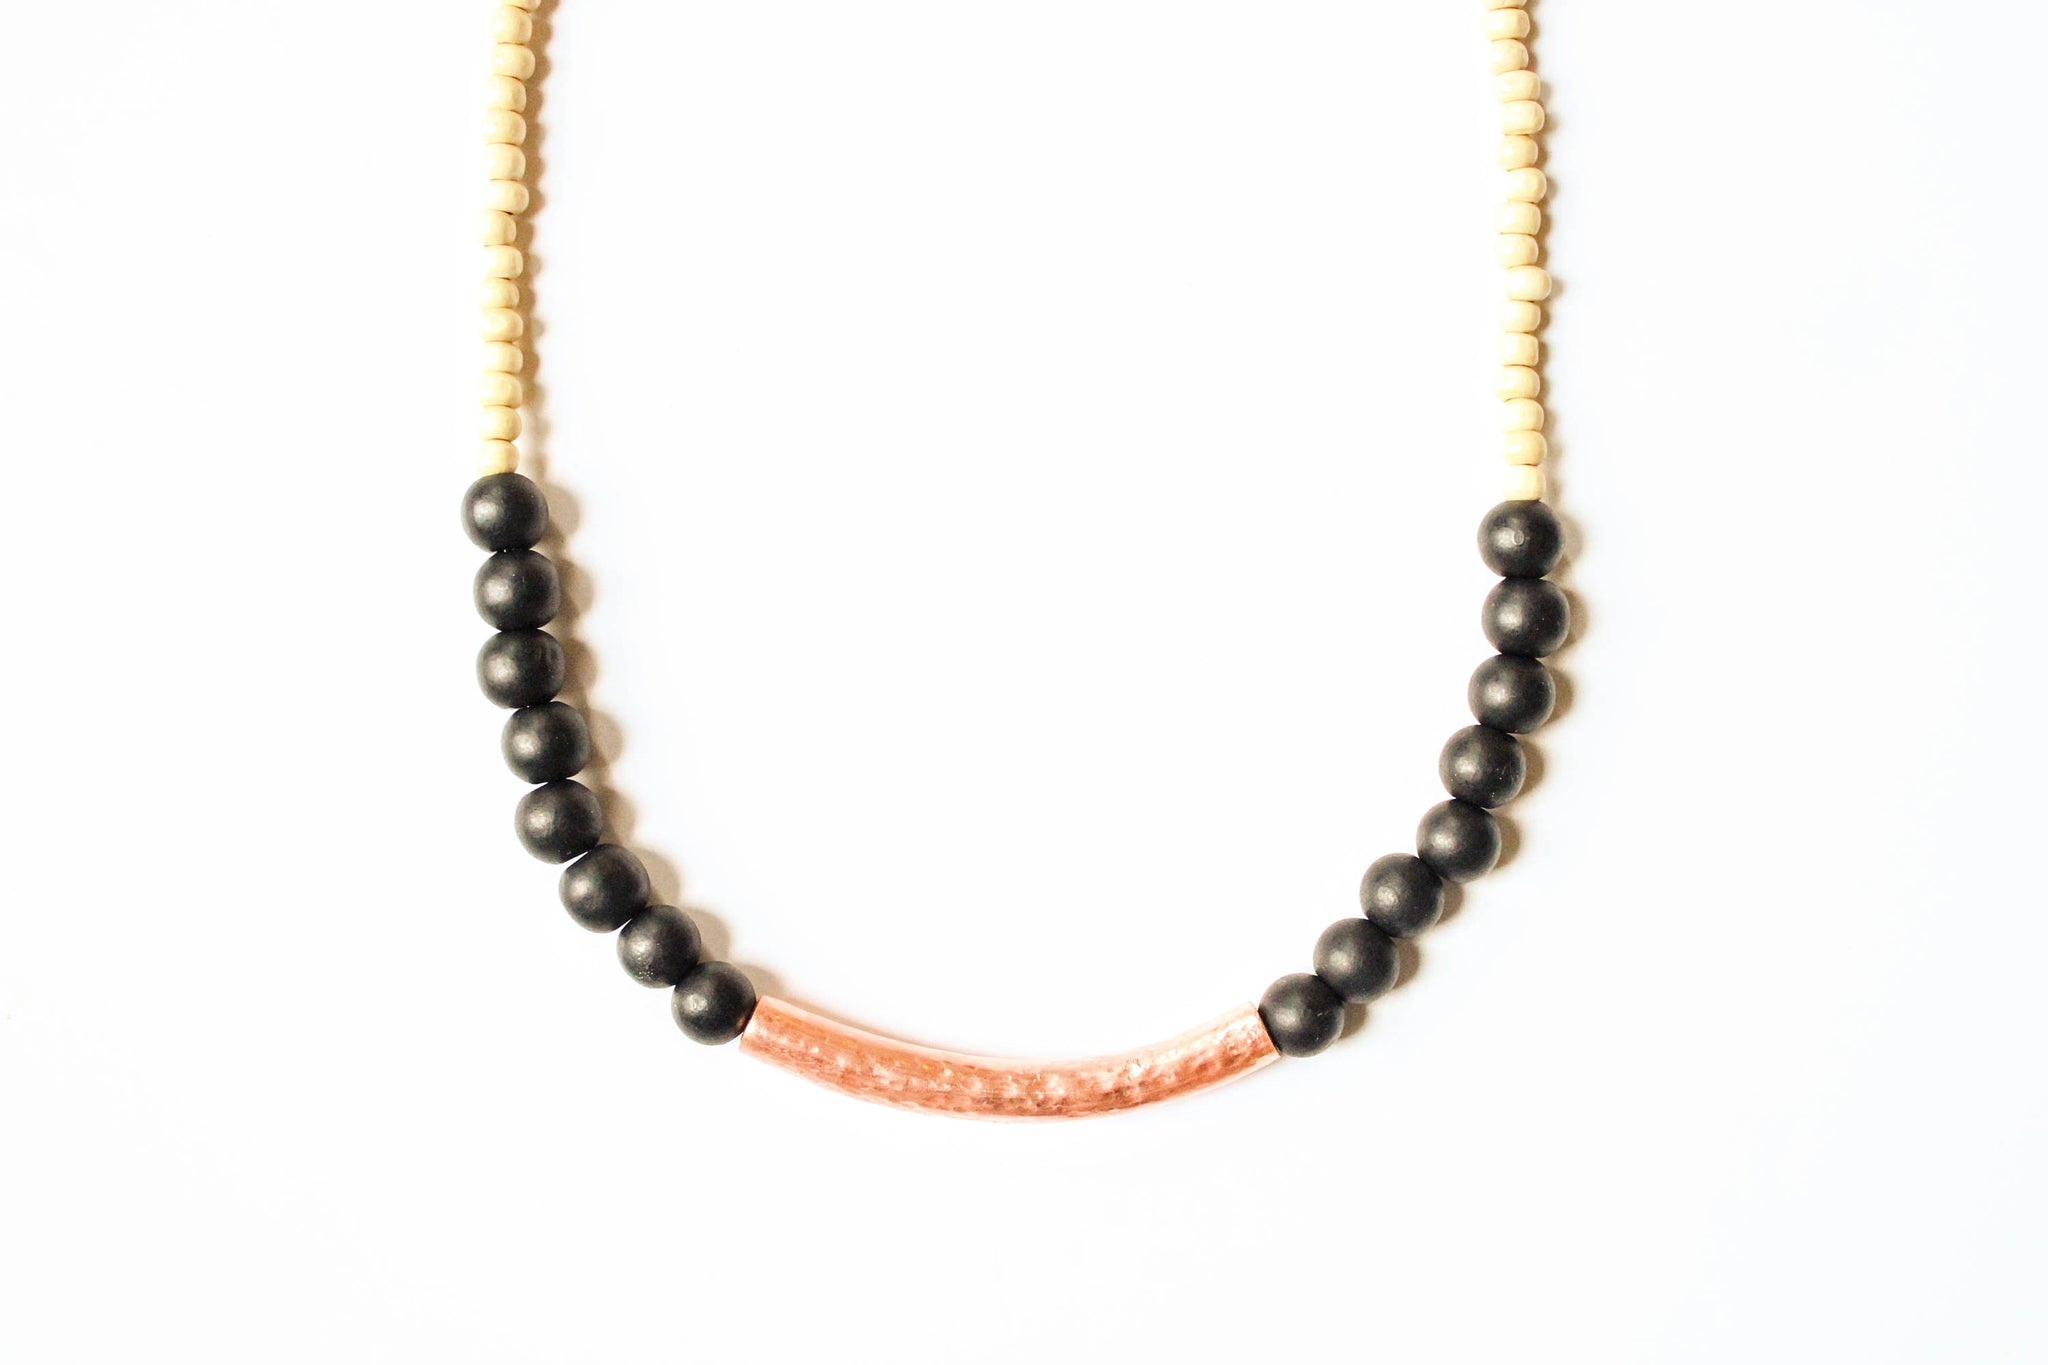 Black and Copper Wood Necklace